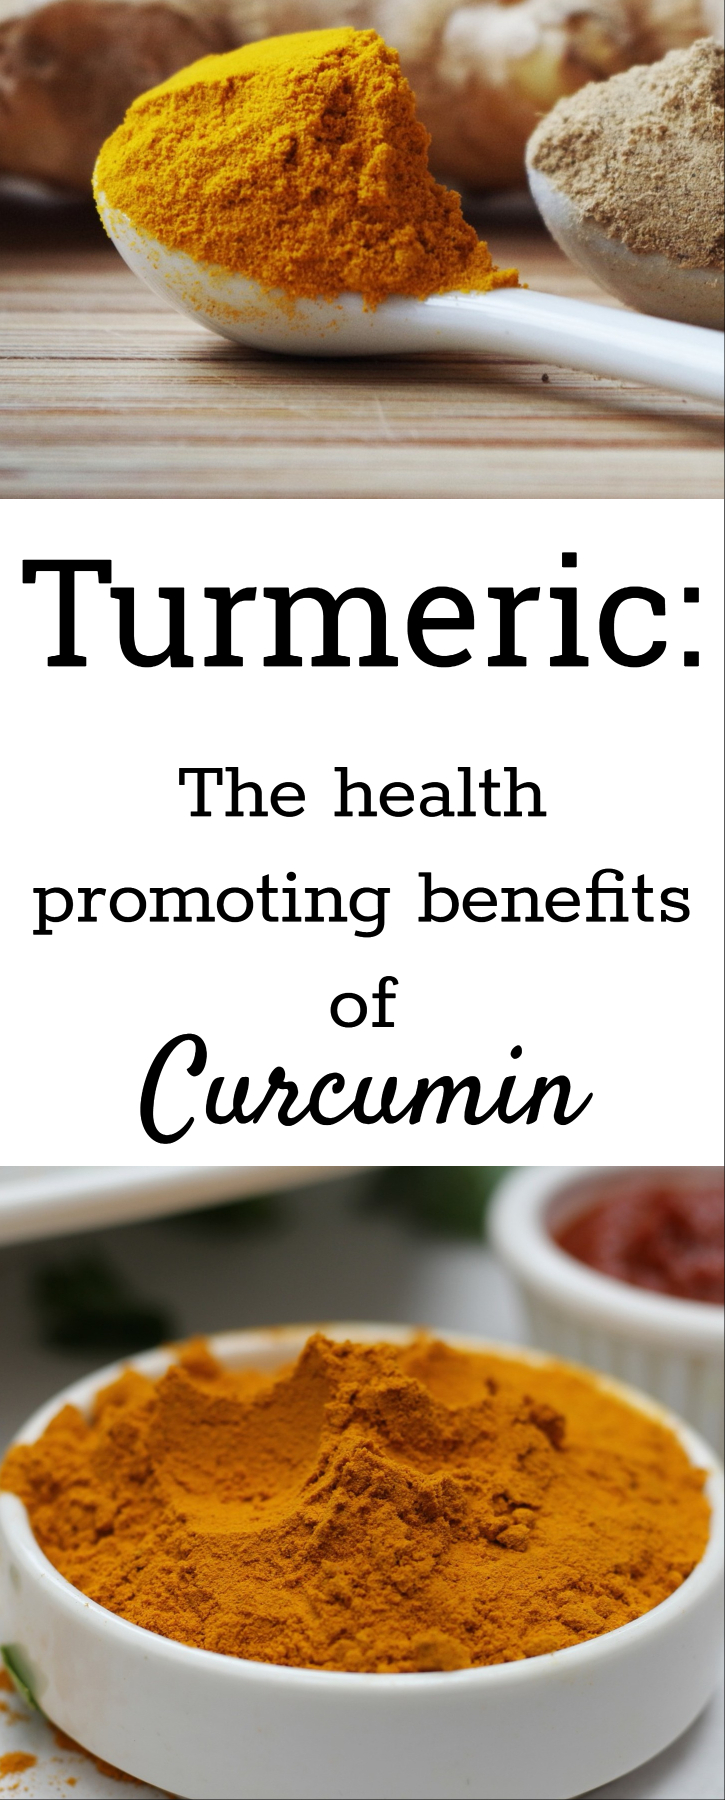 Turmeric: health promoting benefits of curcumin (heal with turmeric/ heal with curcumin/ turmeric anti-inflammatory/ turmeric antioxidant/ turmeric breast cancer/ turmeric prostate cancer/ curcumin heart disease/ )